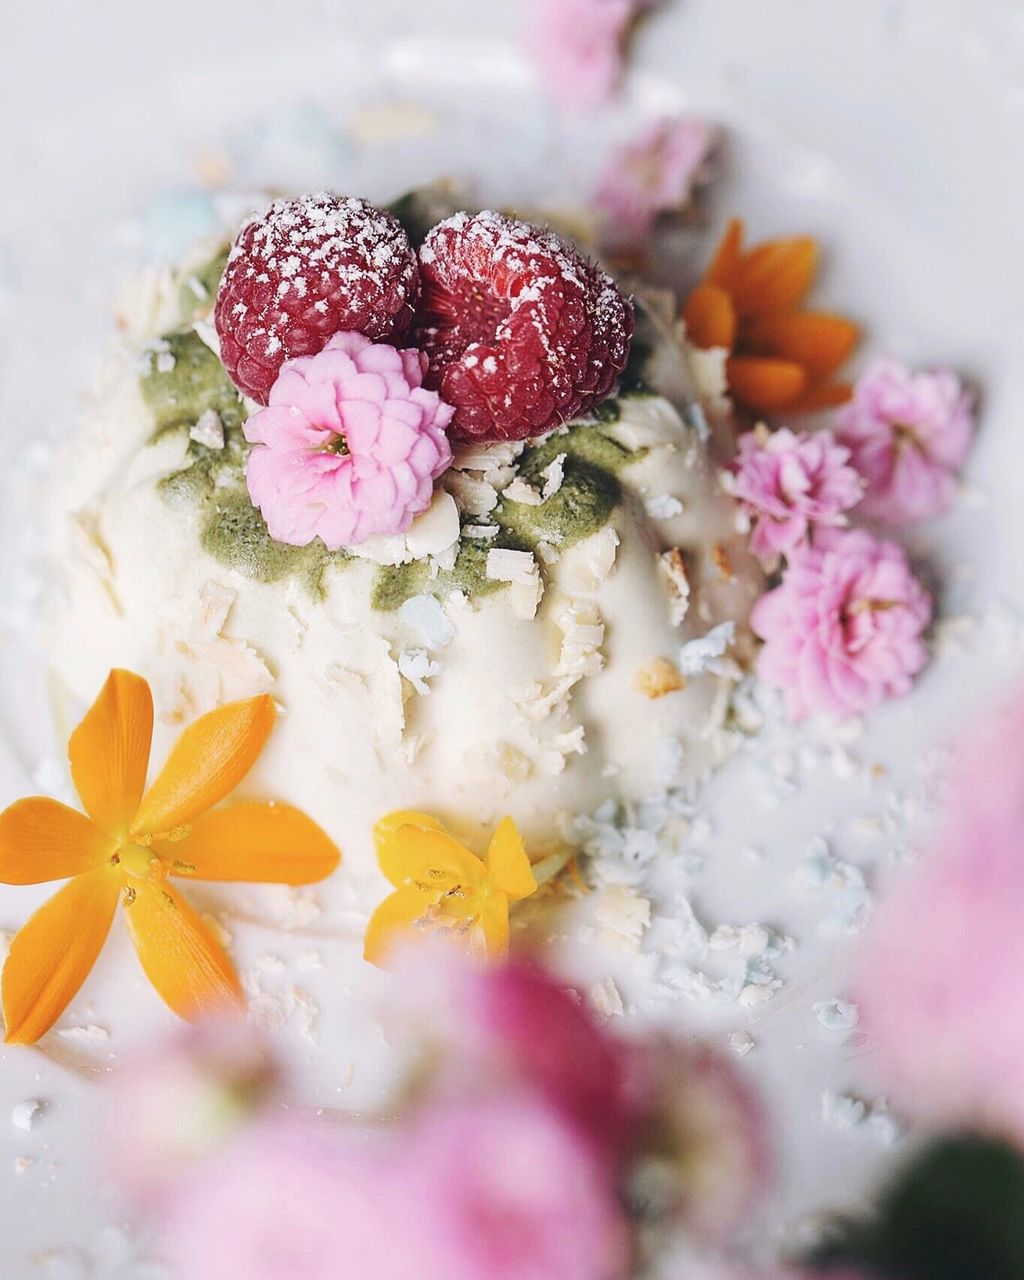 Close-up of flowers garnished on sweet food